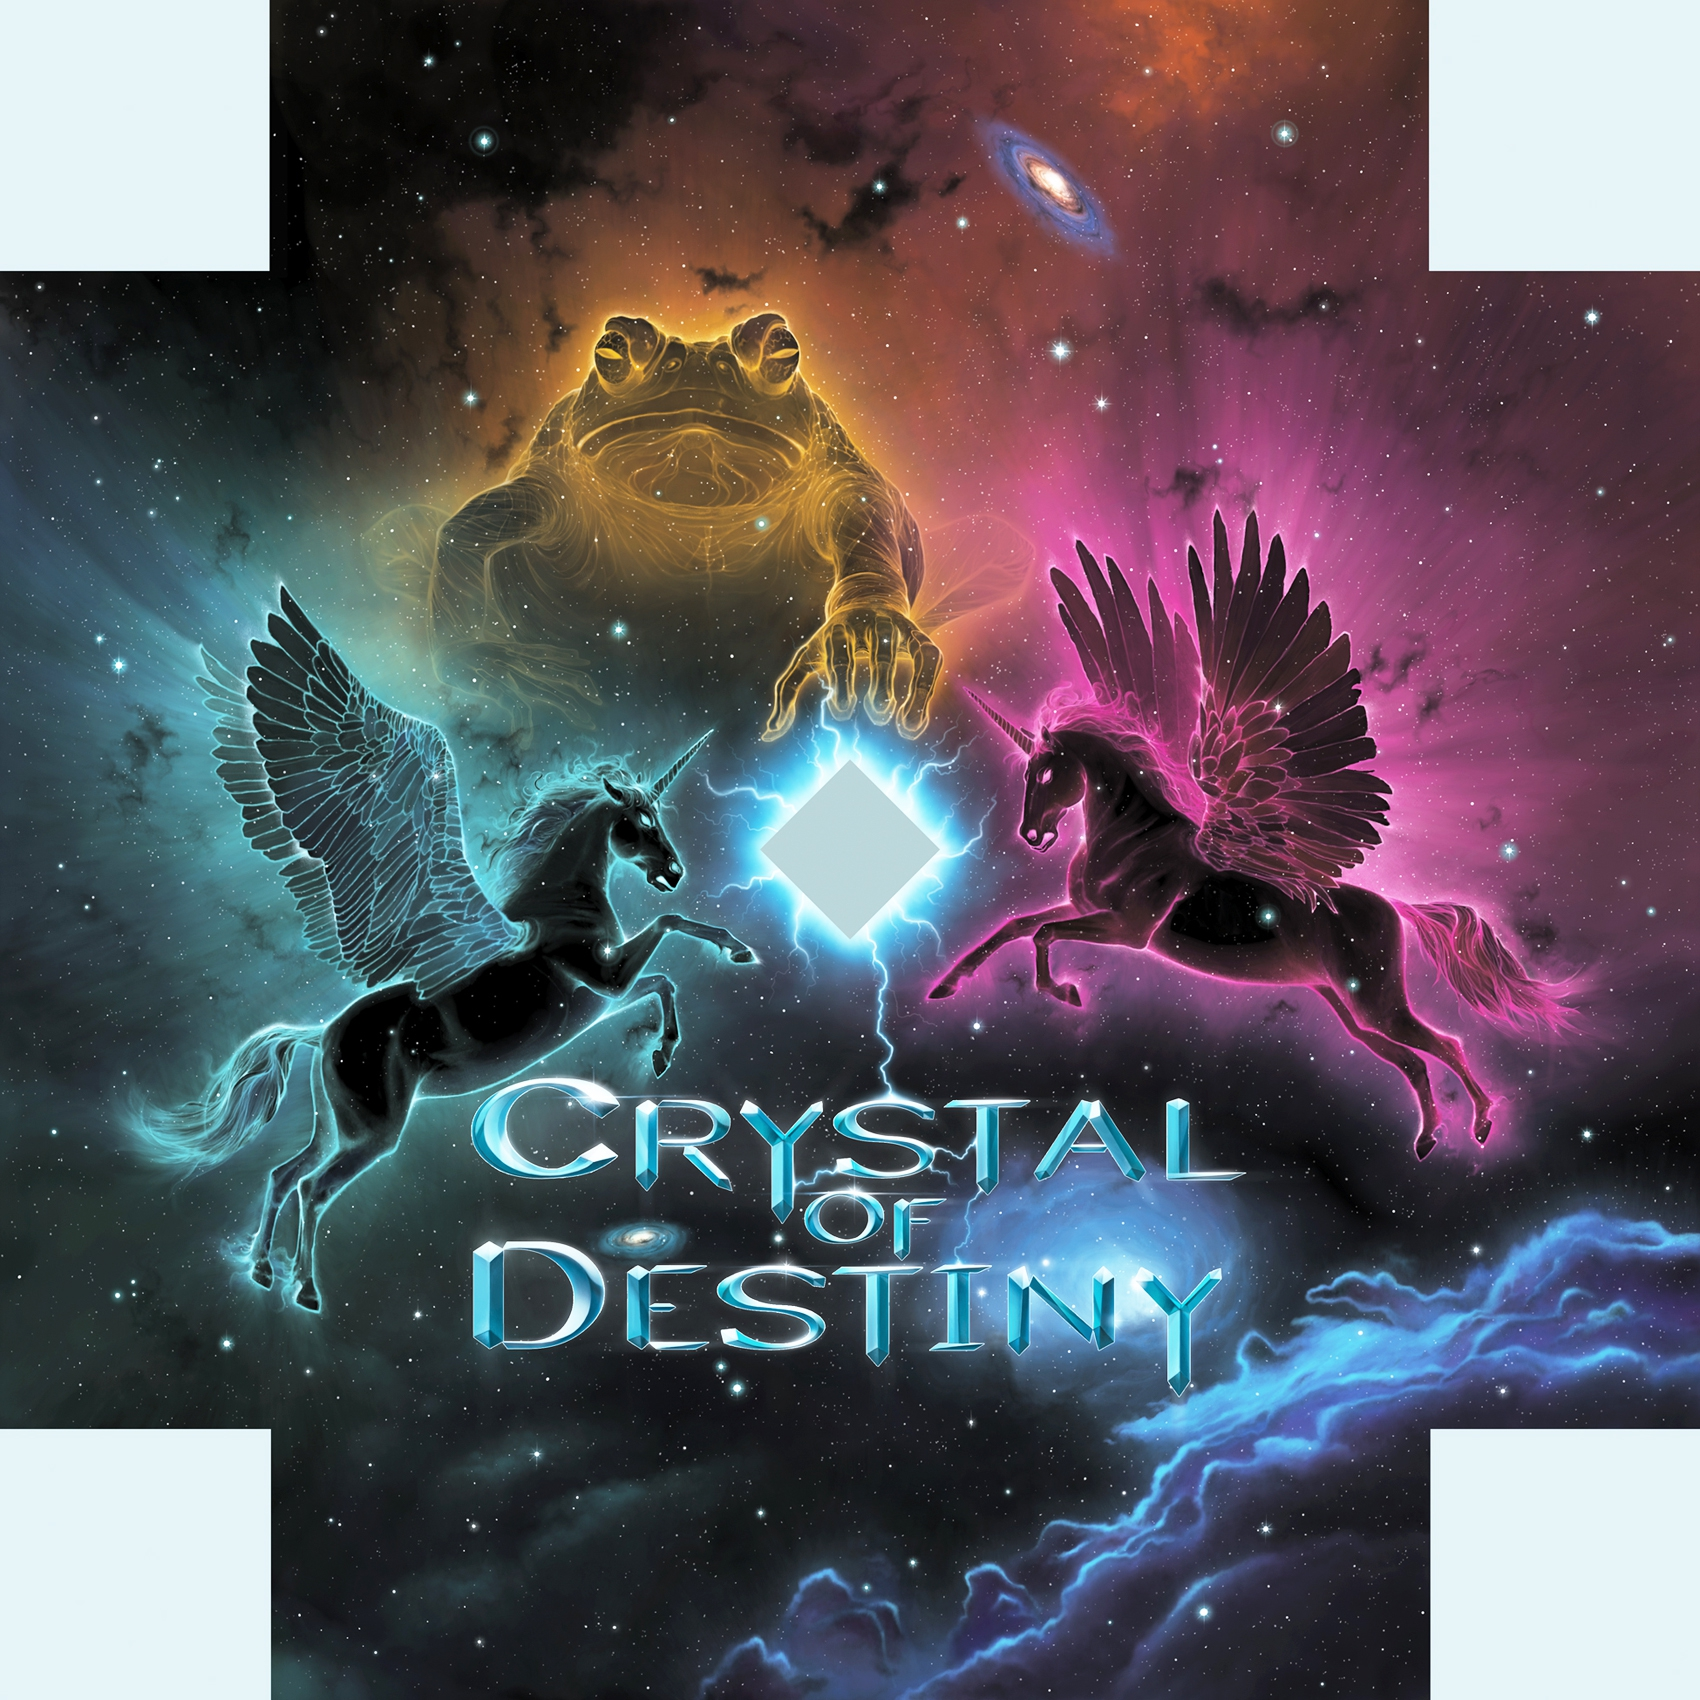 Crystal of Destiny